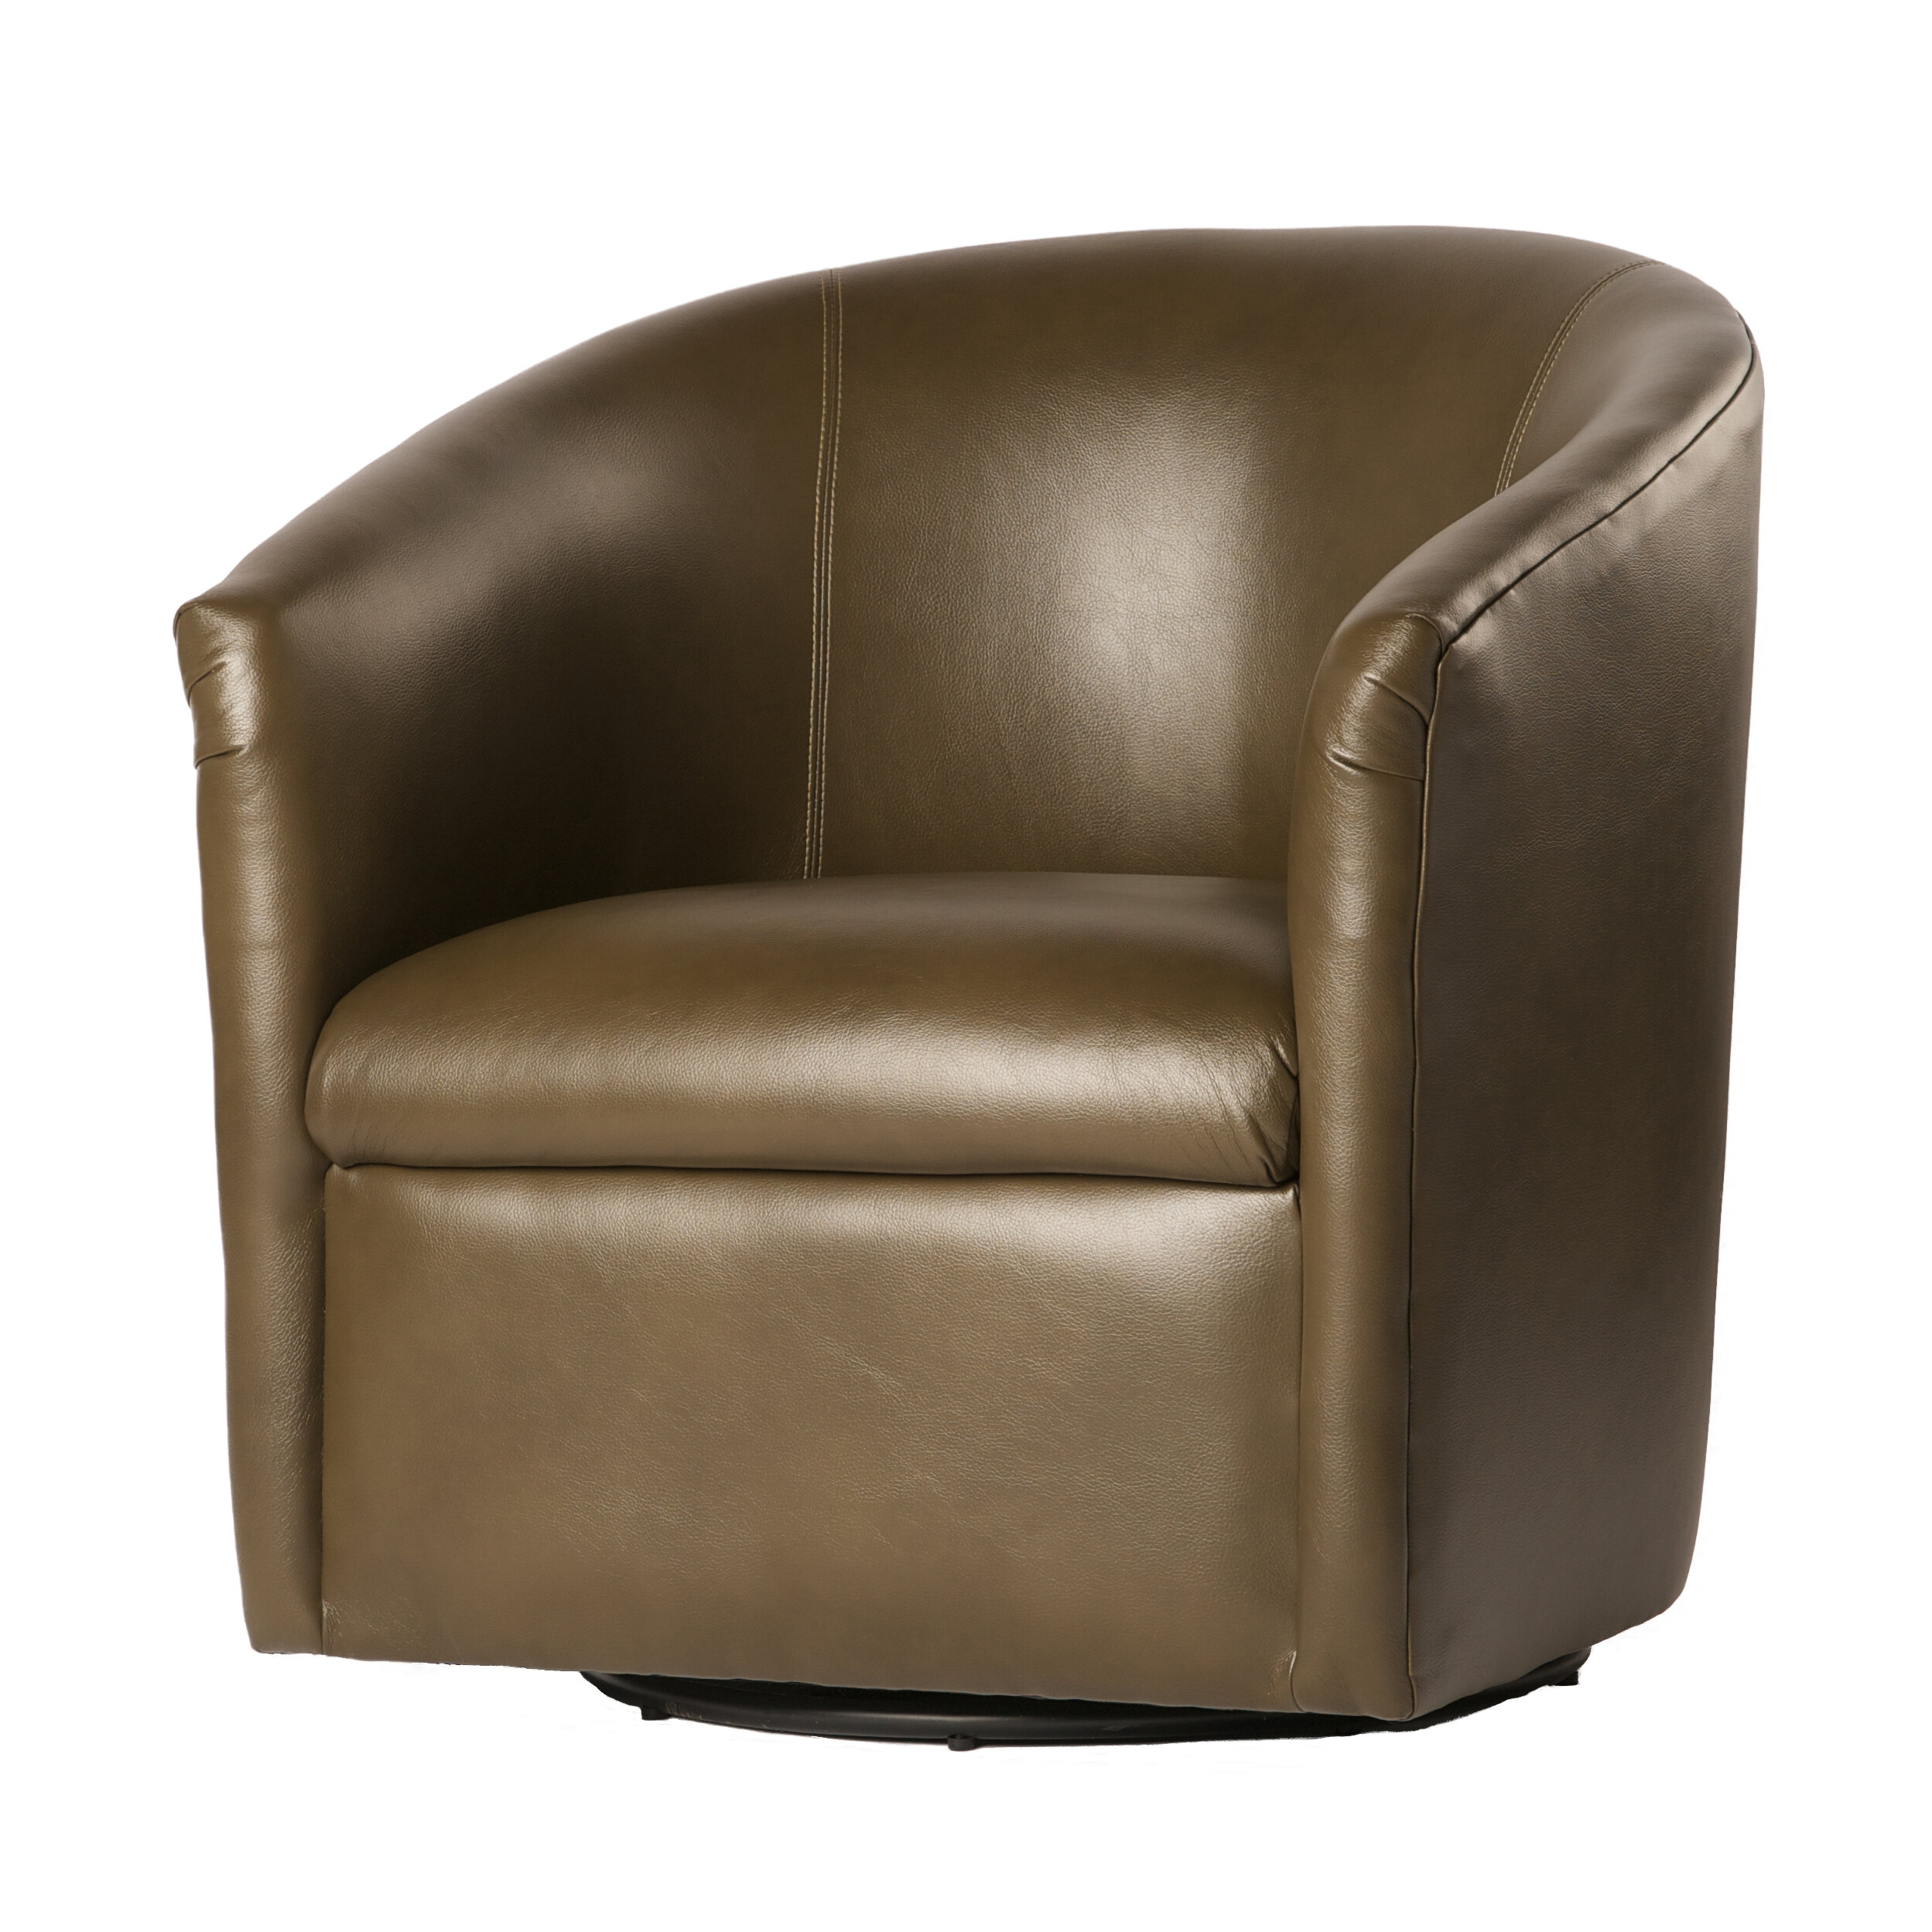 j barrel product mark en home chair furniture swivel gallery occasional modern